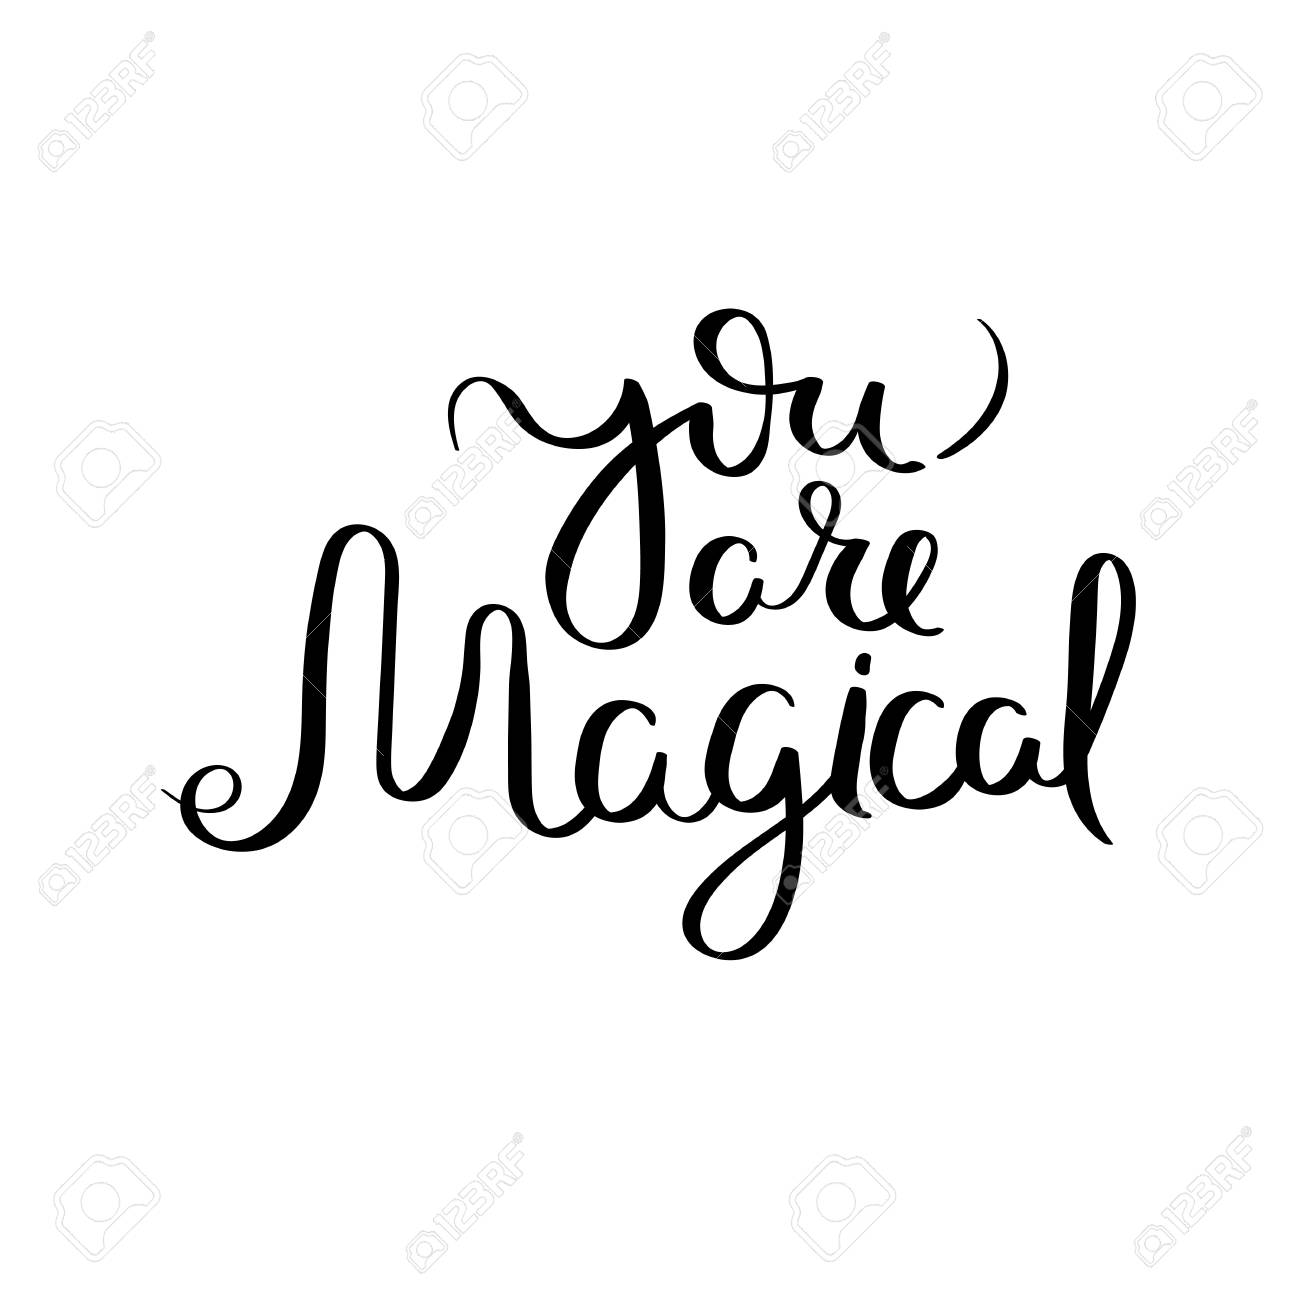 You Are Magical Hand Written Calligraphy Quote Motivation For